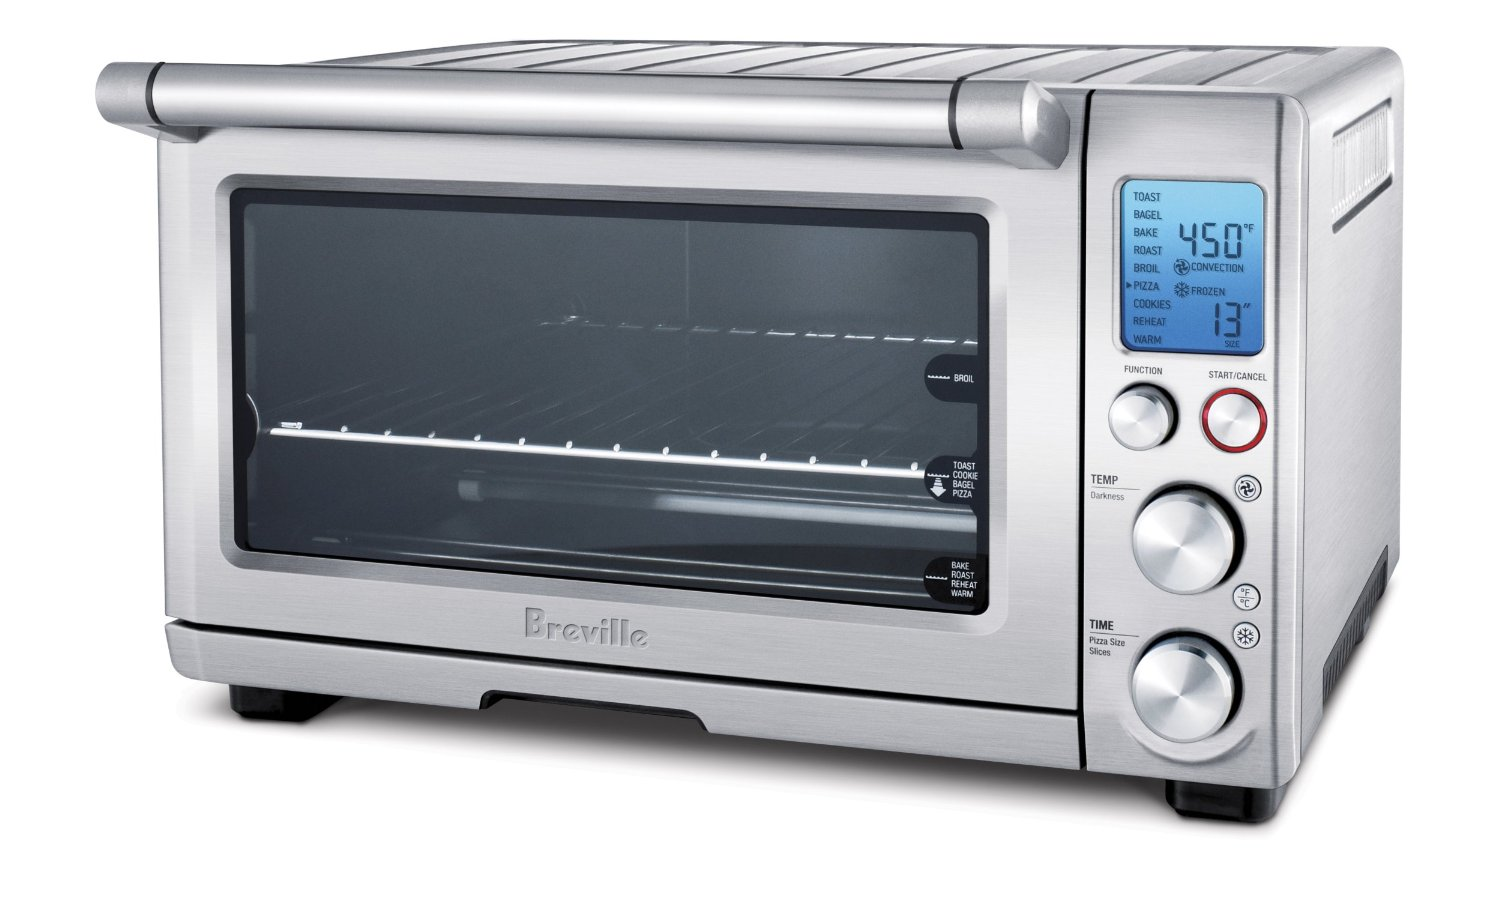 Countertop Convection Oven With Microwave : breville toaster oven top best toaster oven convection oven 2013